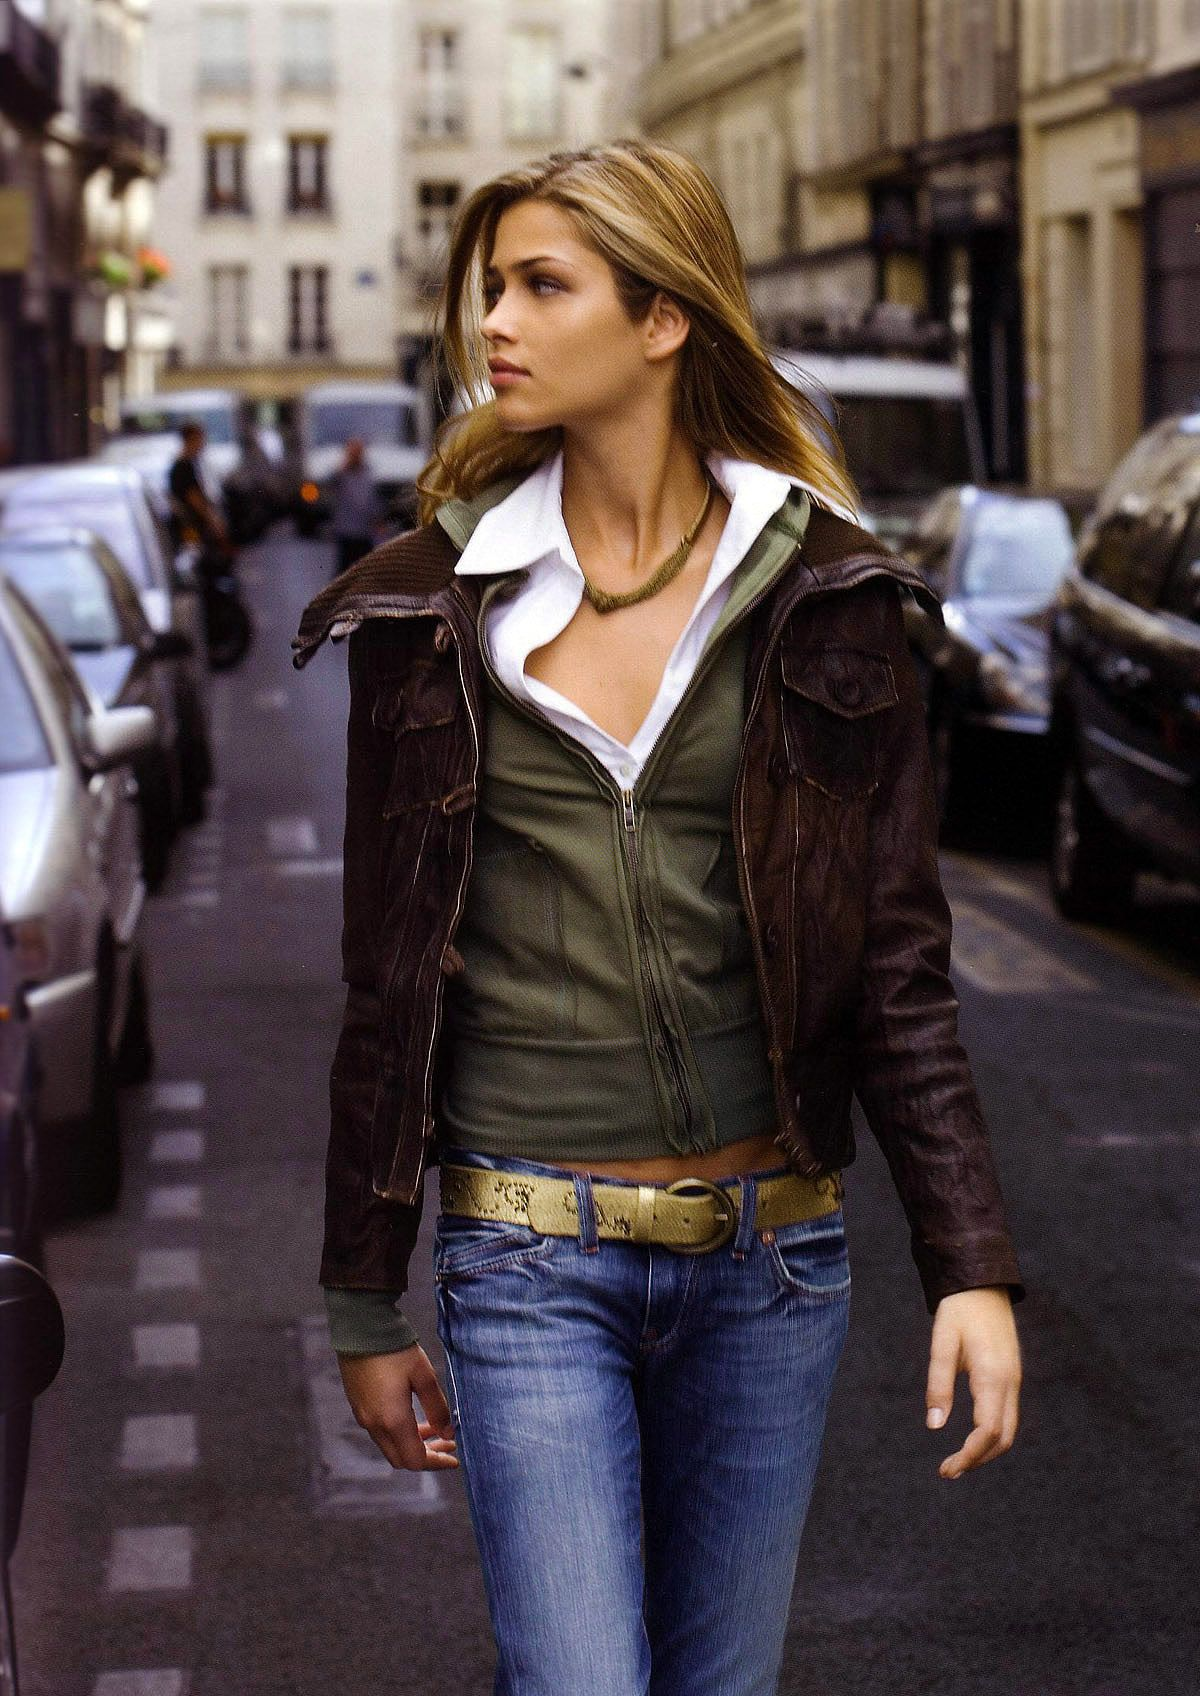 kodisha Ana Beatriz Barros Babies Got Her Blue Jeans On